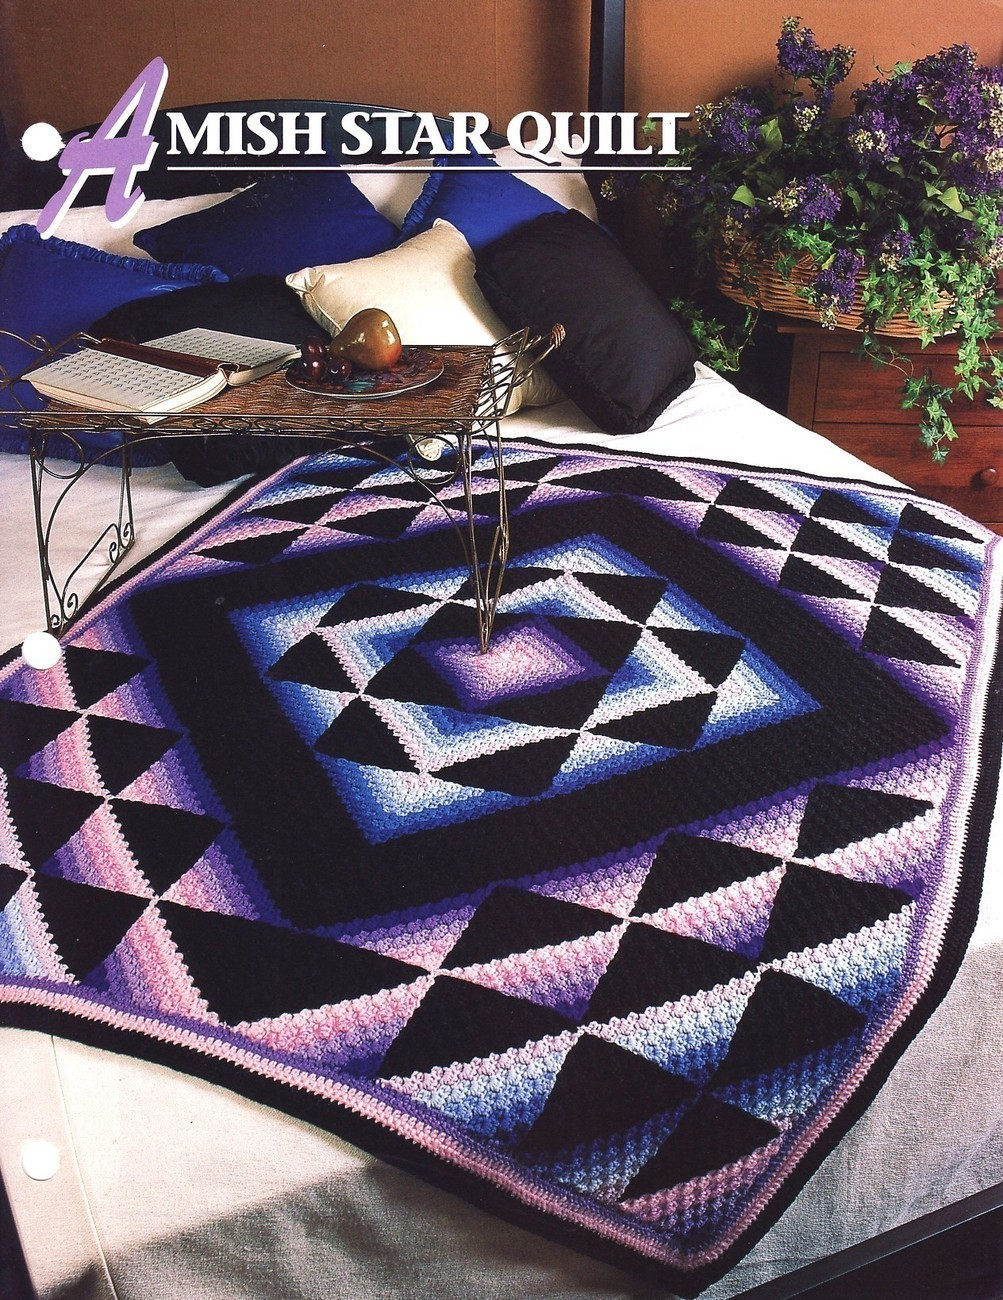 Crochet Afghan Patterns Quilt : Amish Star Quilt Crochet Pattern Annies Crochet Quilt ...